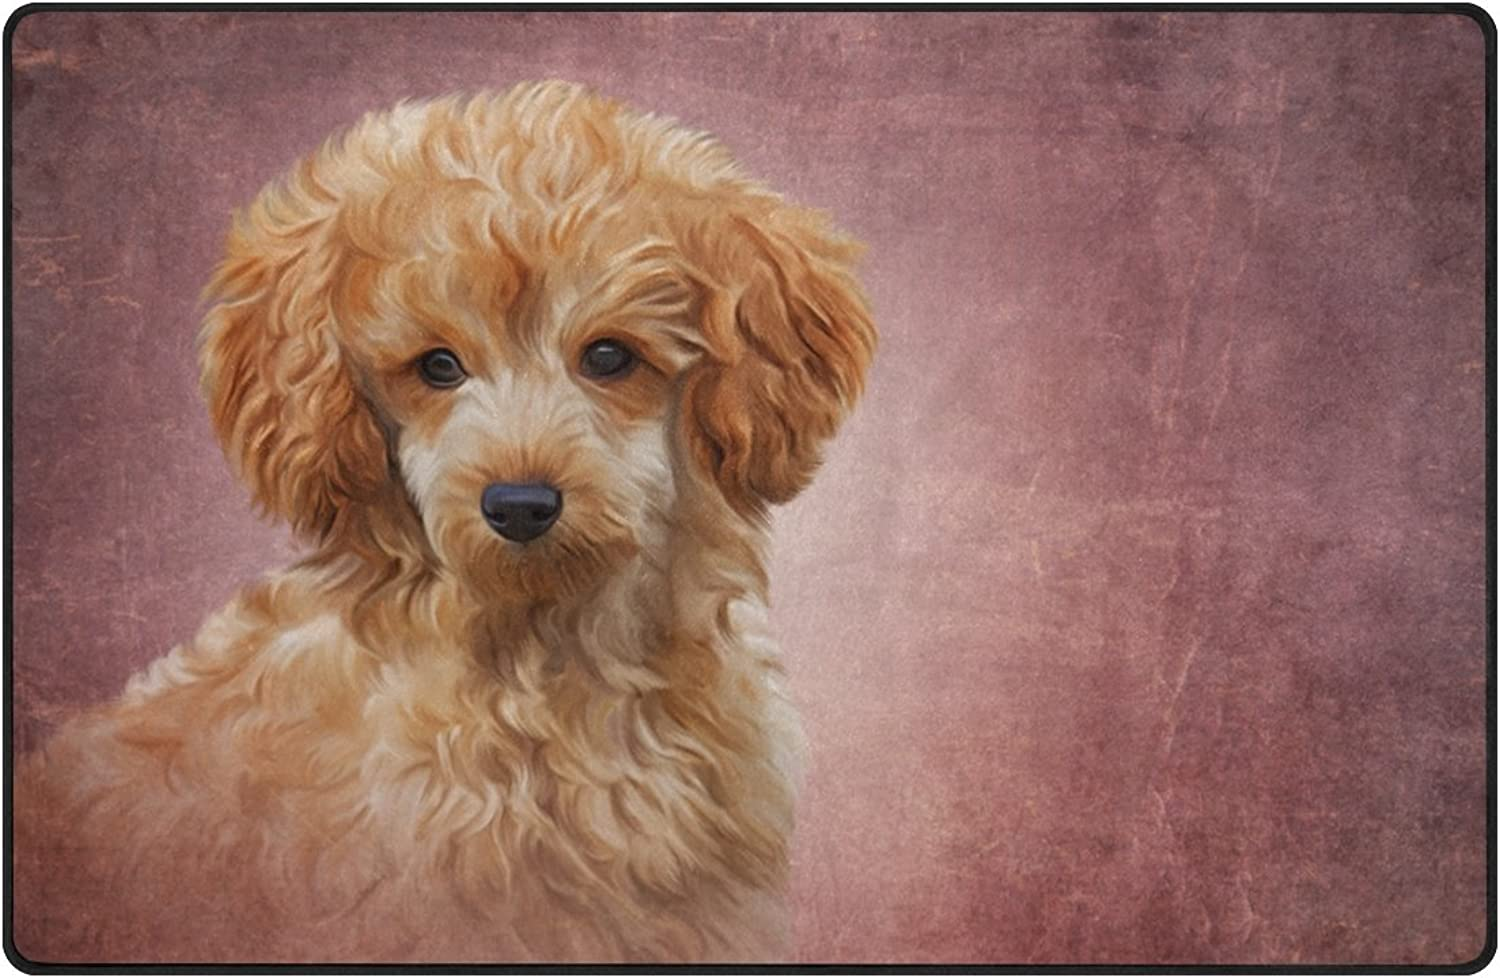 My Daily Toy Poodle Puppy Dog Area Rug 3'3  x 5', Living Room Bedroom Kitchen Decorative Lightweight Foam Printed Rug